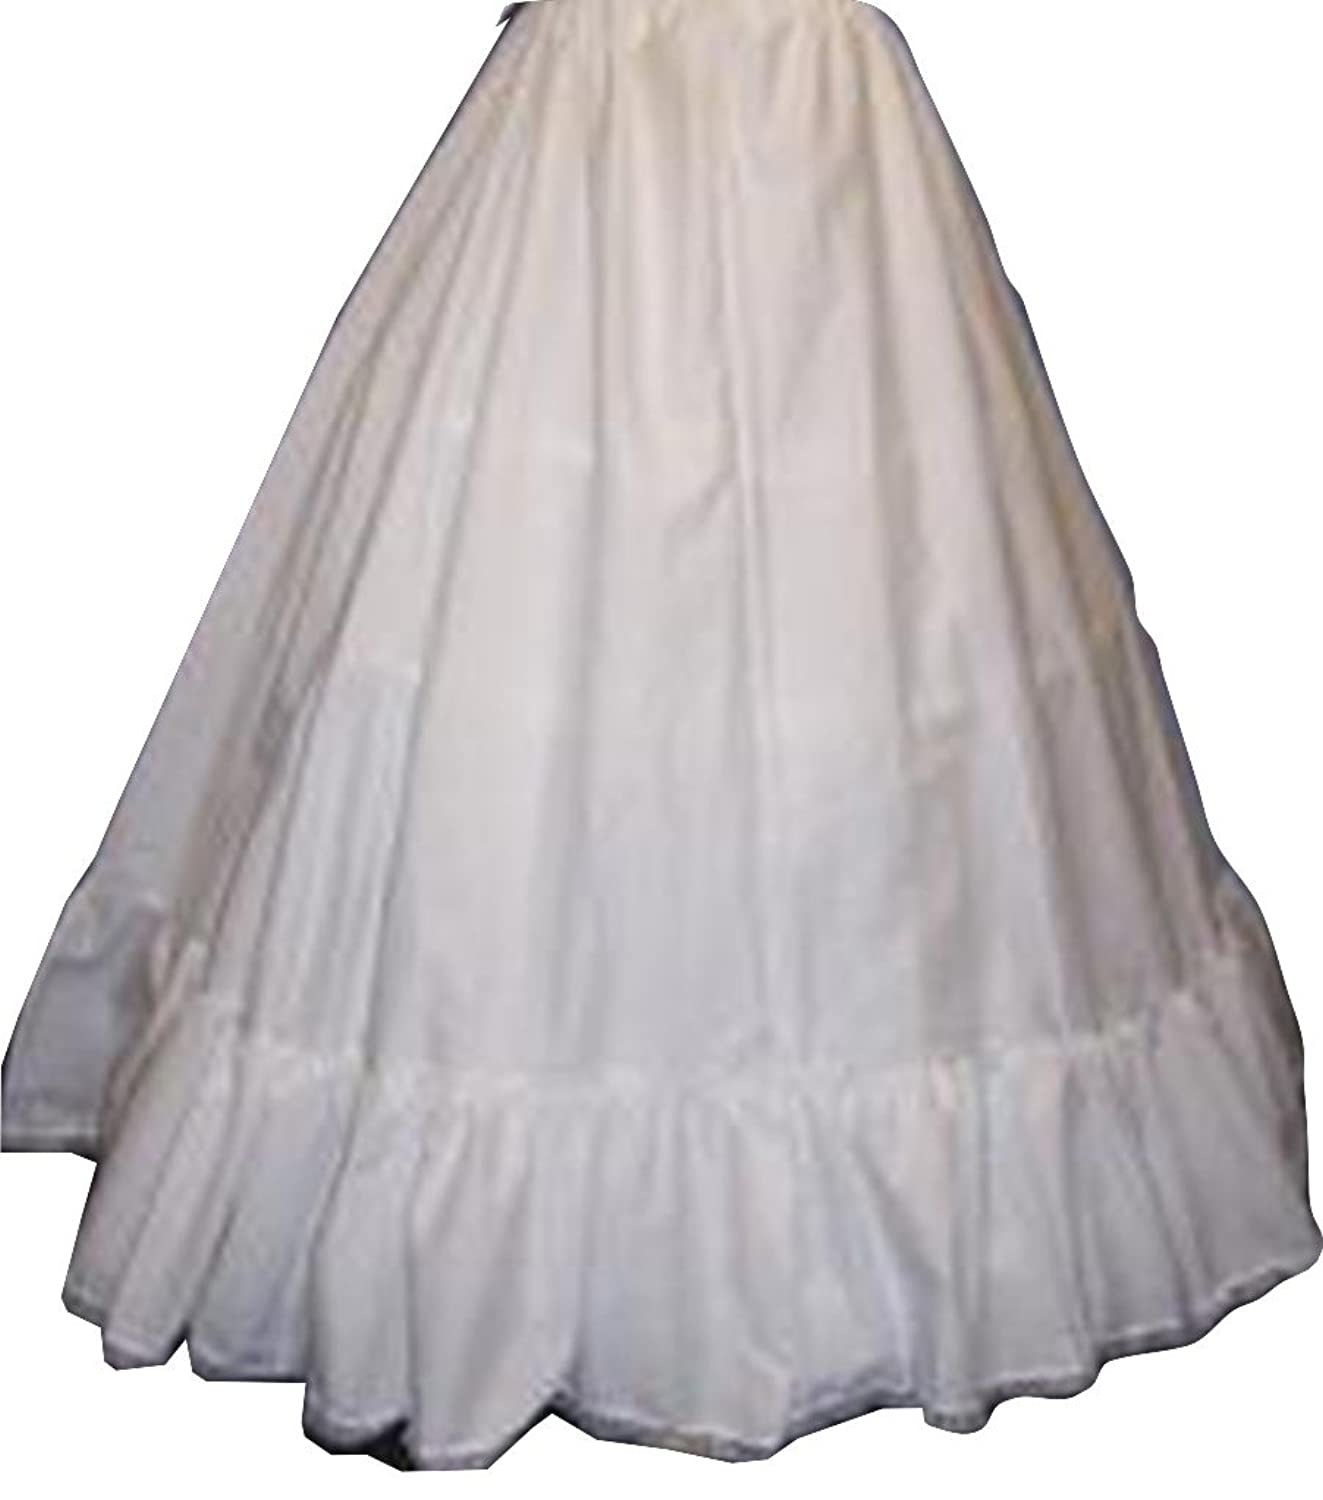 Victorian Lingerie – Underwear, Petticoat, Bloomers, Chemise XL- Hoop Slip Skirt Cotton Cover Over Skirt Civil War Wear (102DSC-C) $40.00 AT vintagedancer.com